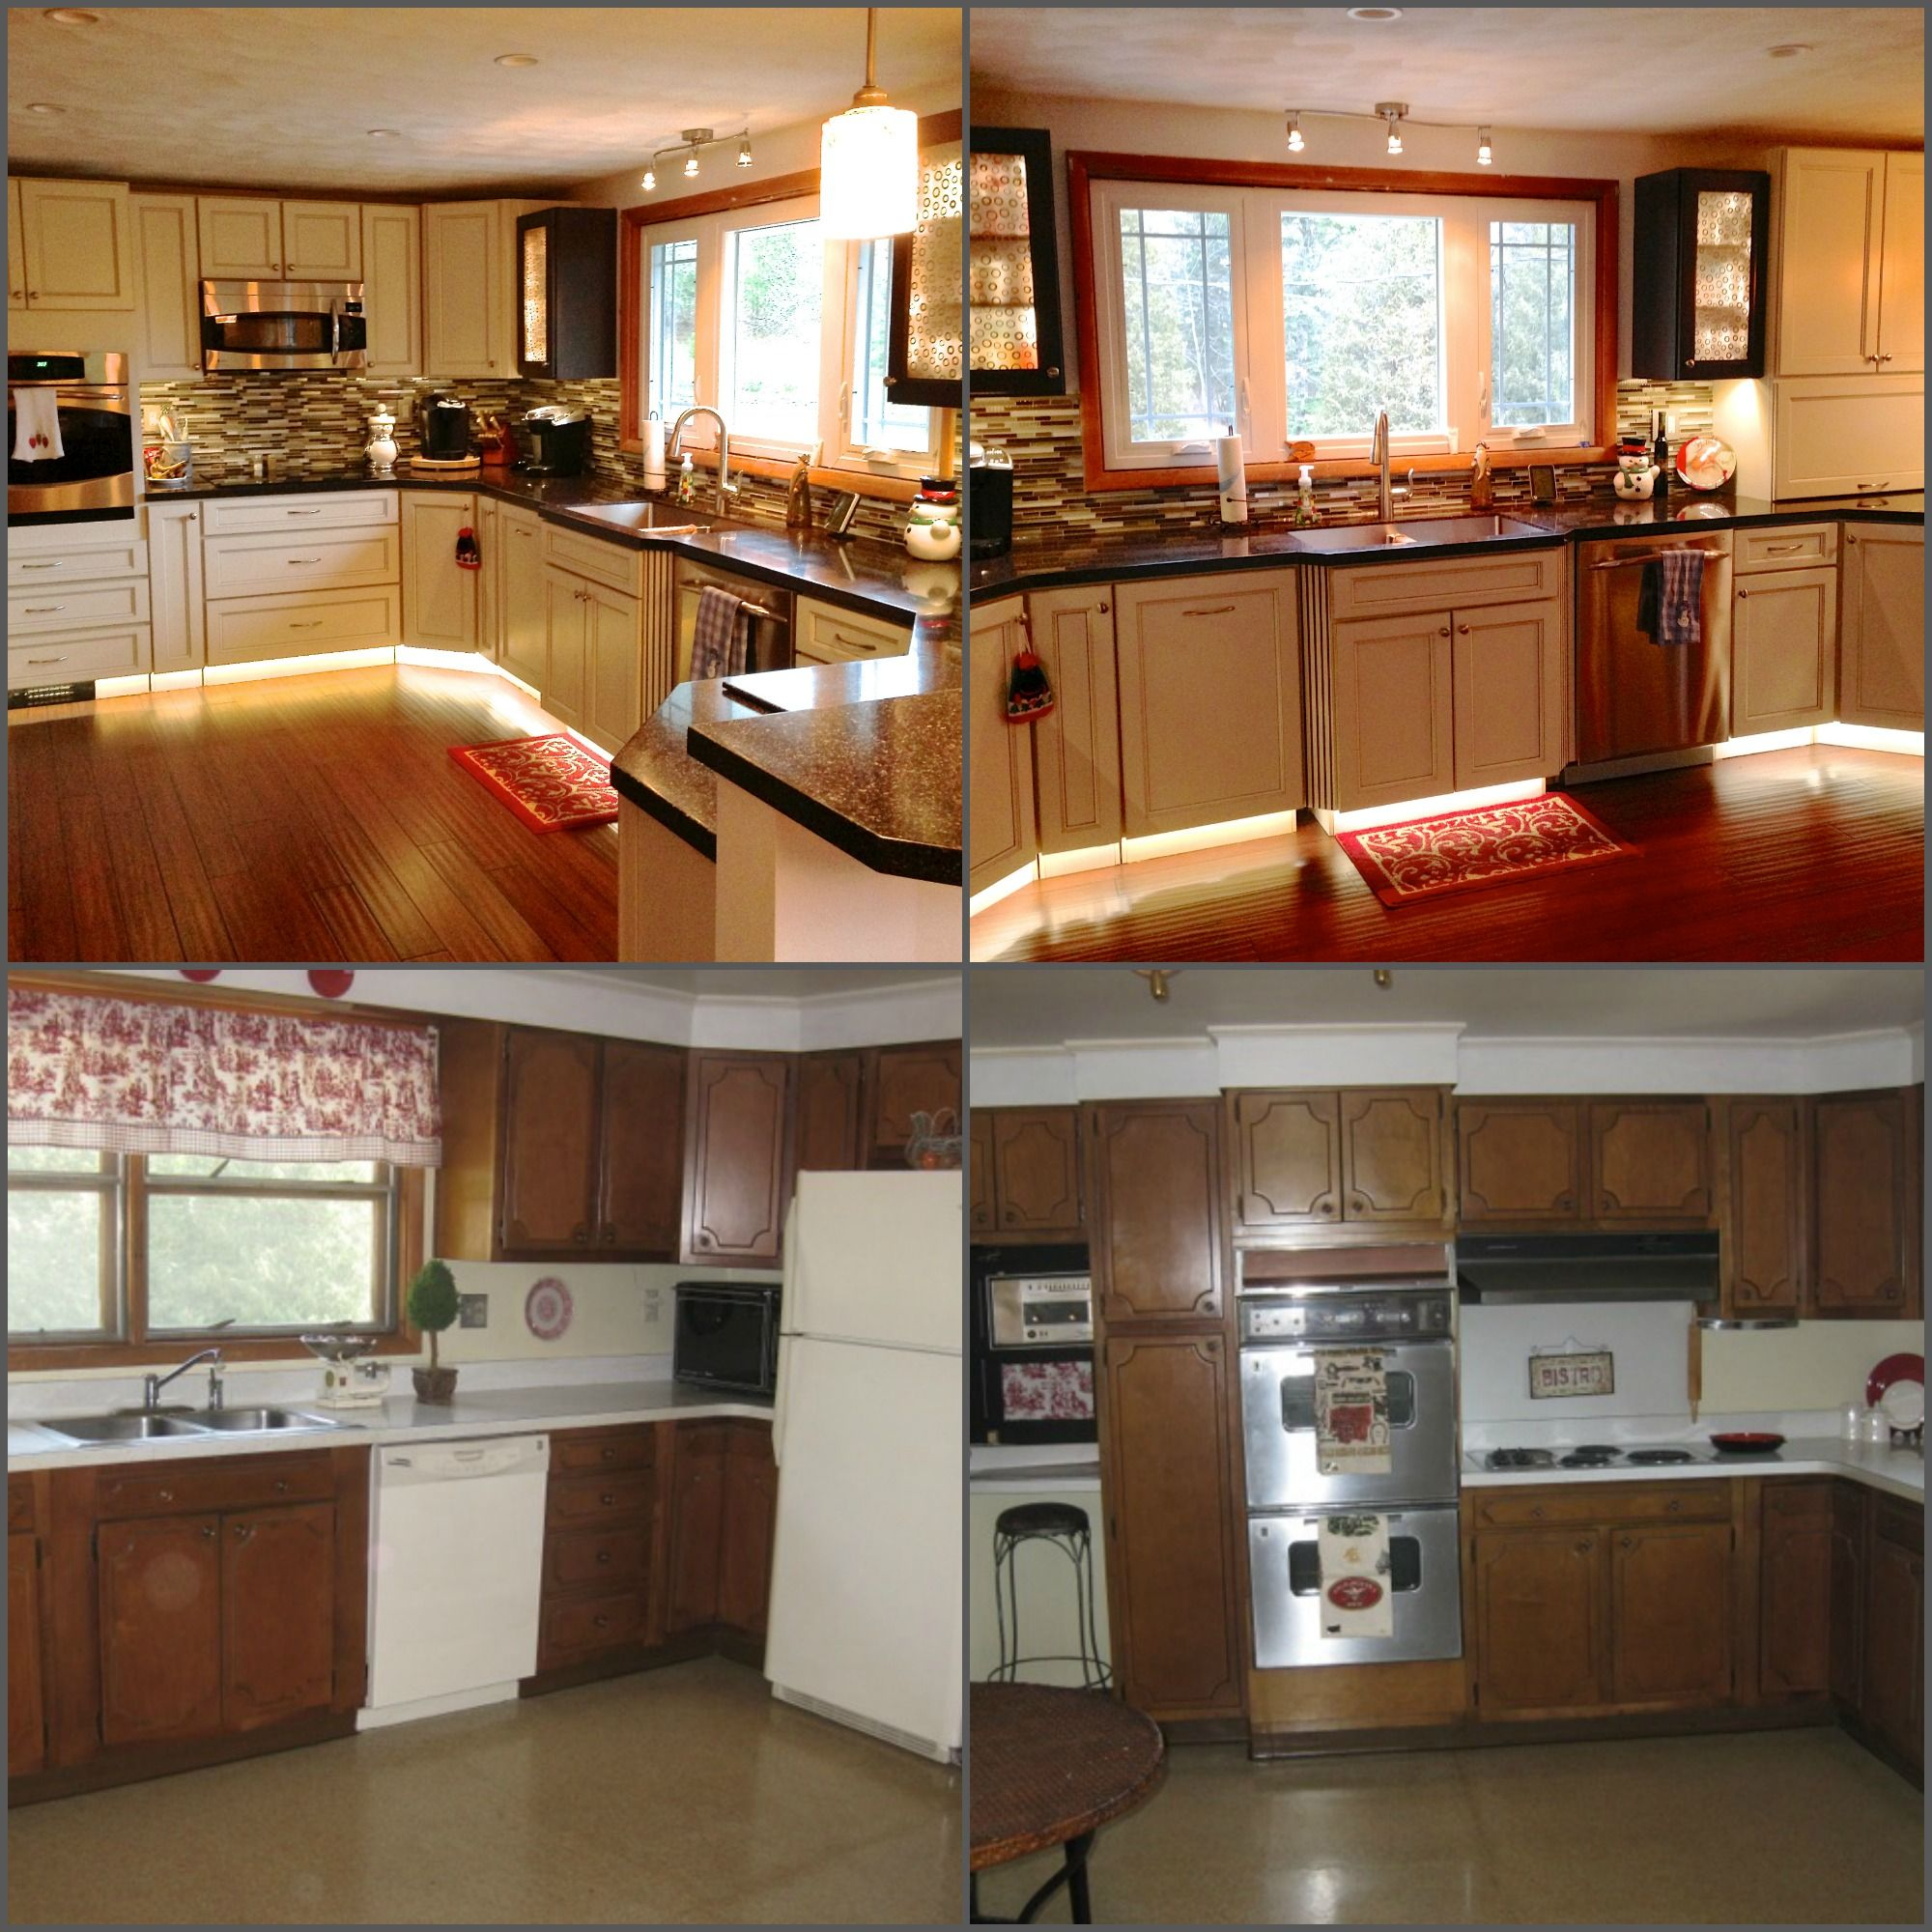 mobile home kitchen remodel as well mobile home kitchen remodeling remodels before after. Black Bedroom Furniture Sets. Home Design Ideas